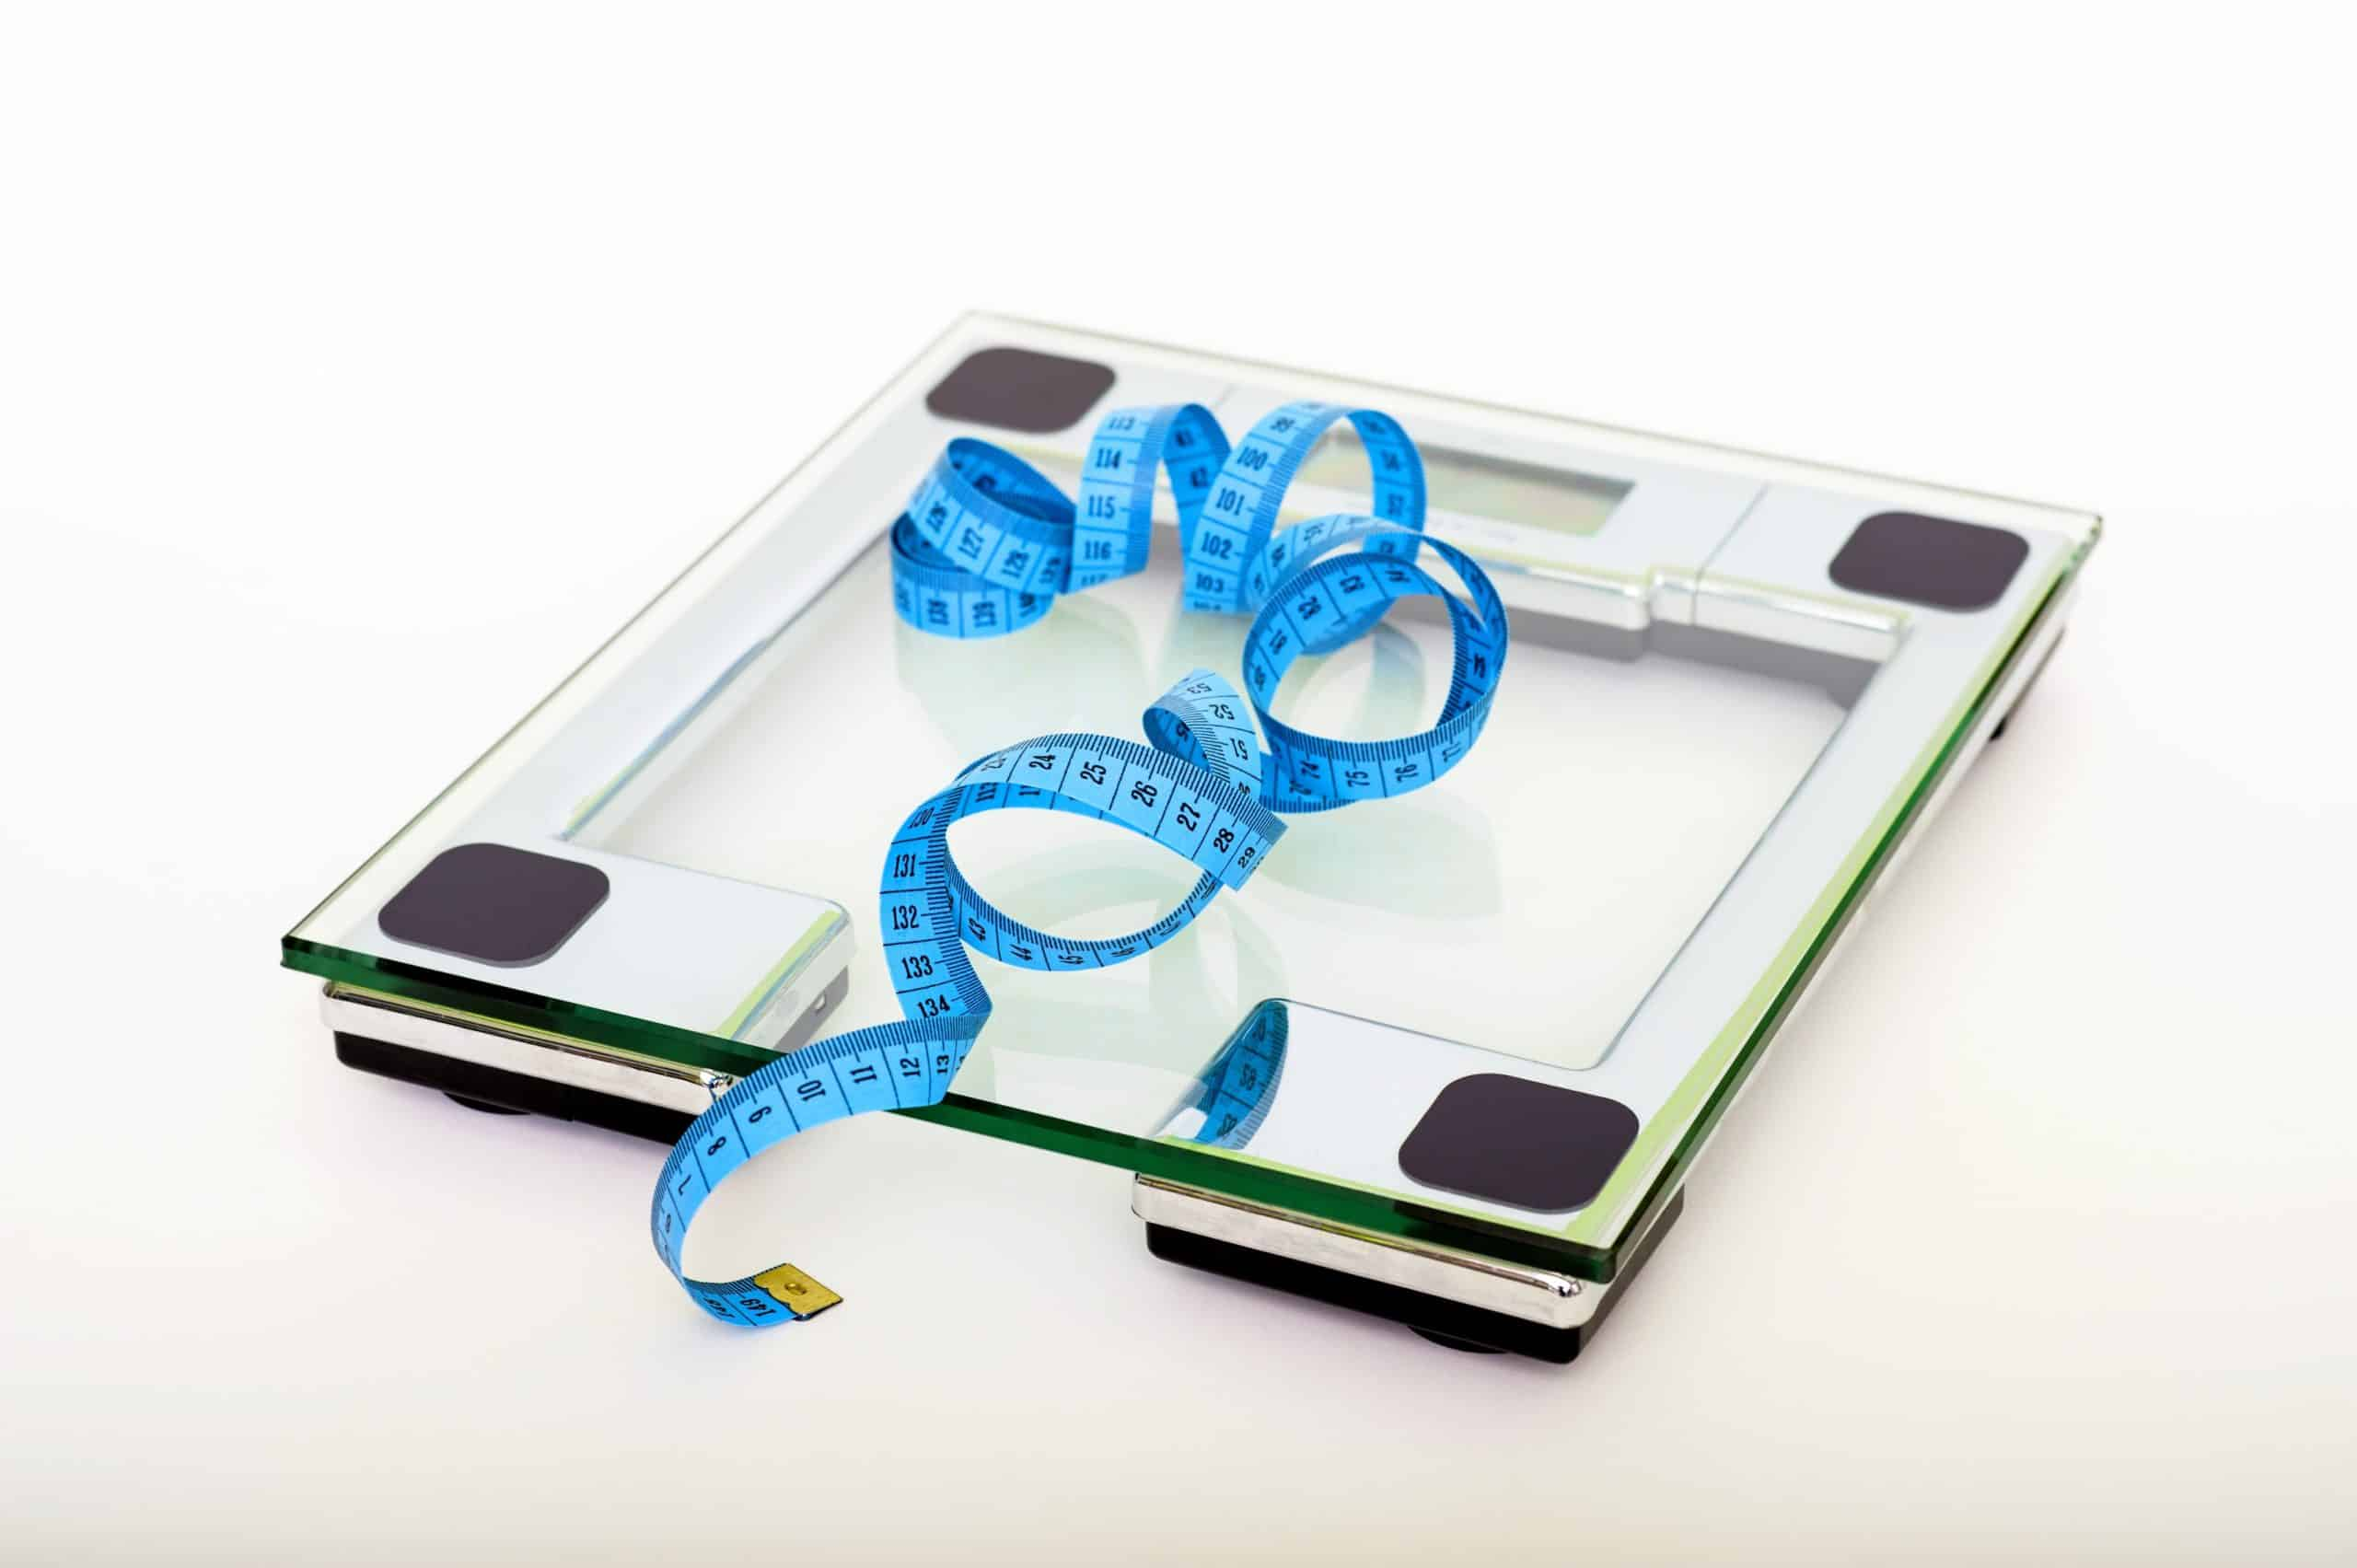 Scales and tape measure